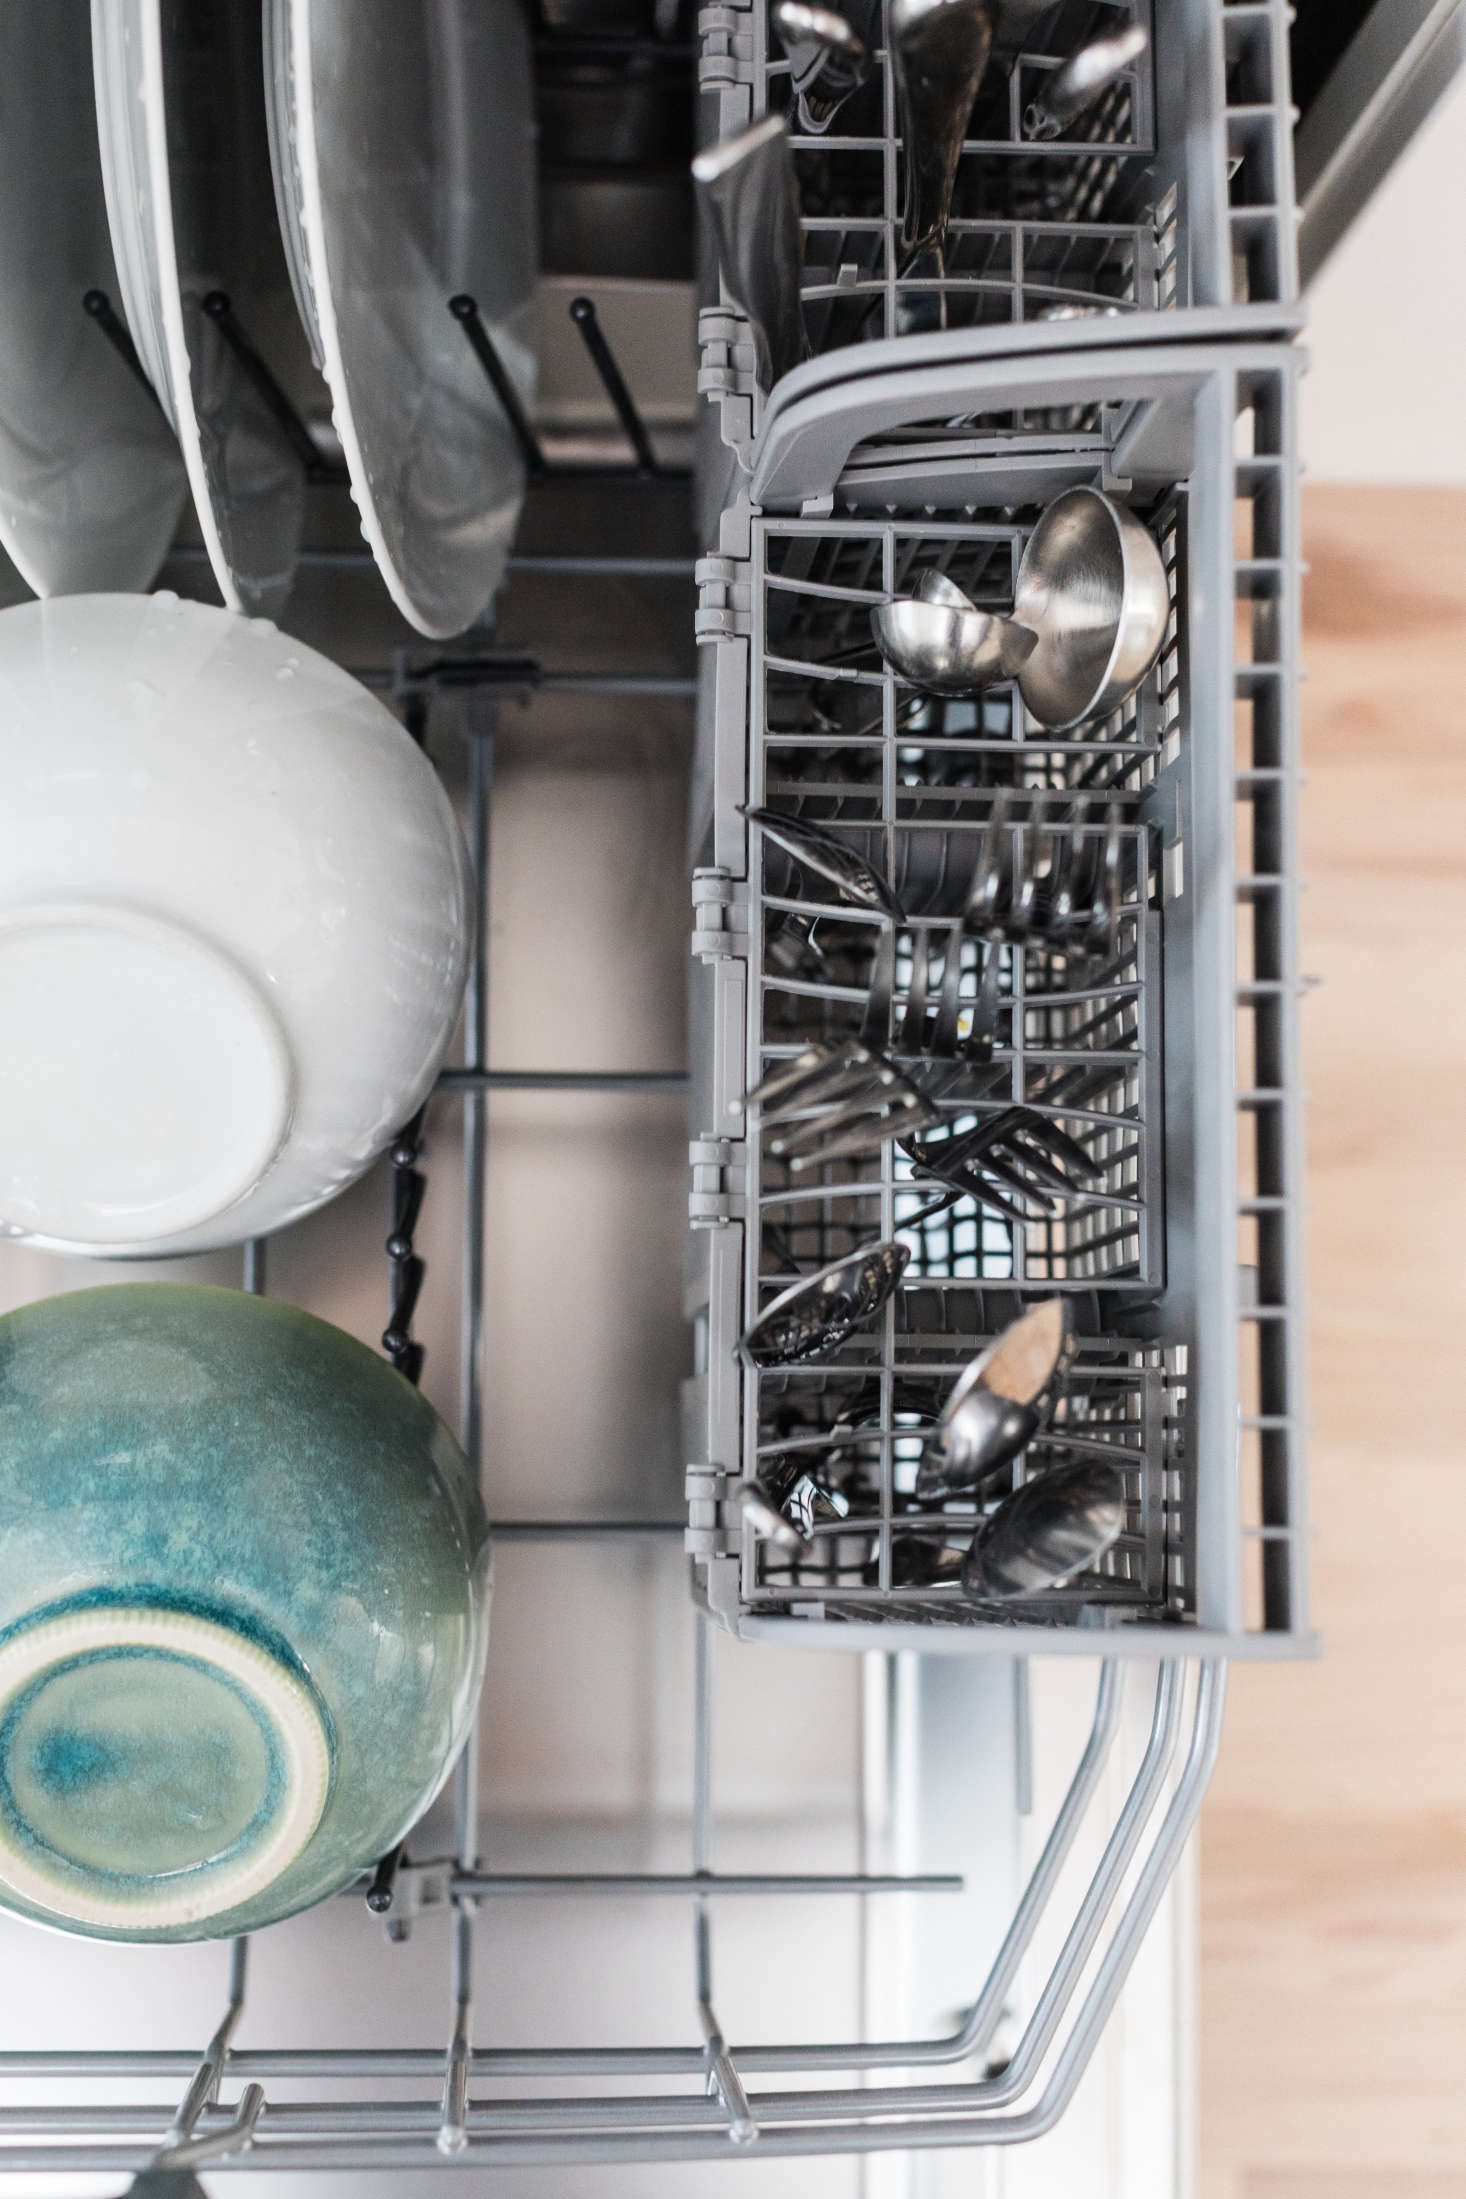 Bosch dishwashers have removable flatware compartments which can be placed along the side, or in the center, of the lower rack.